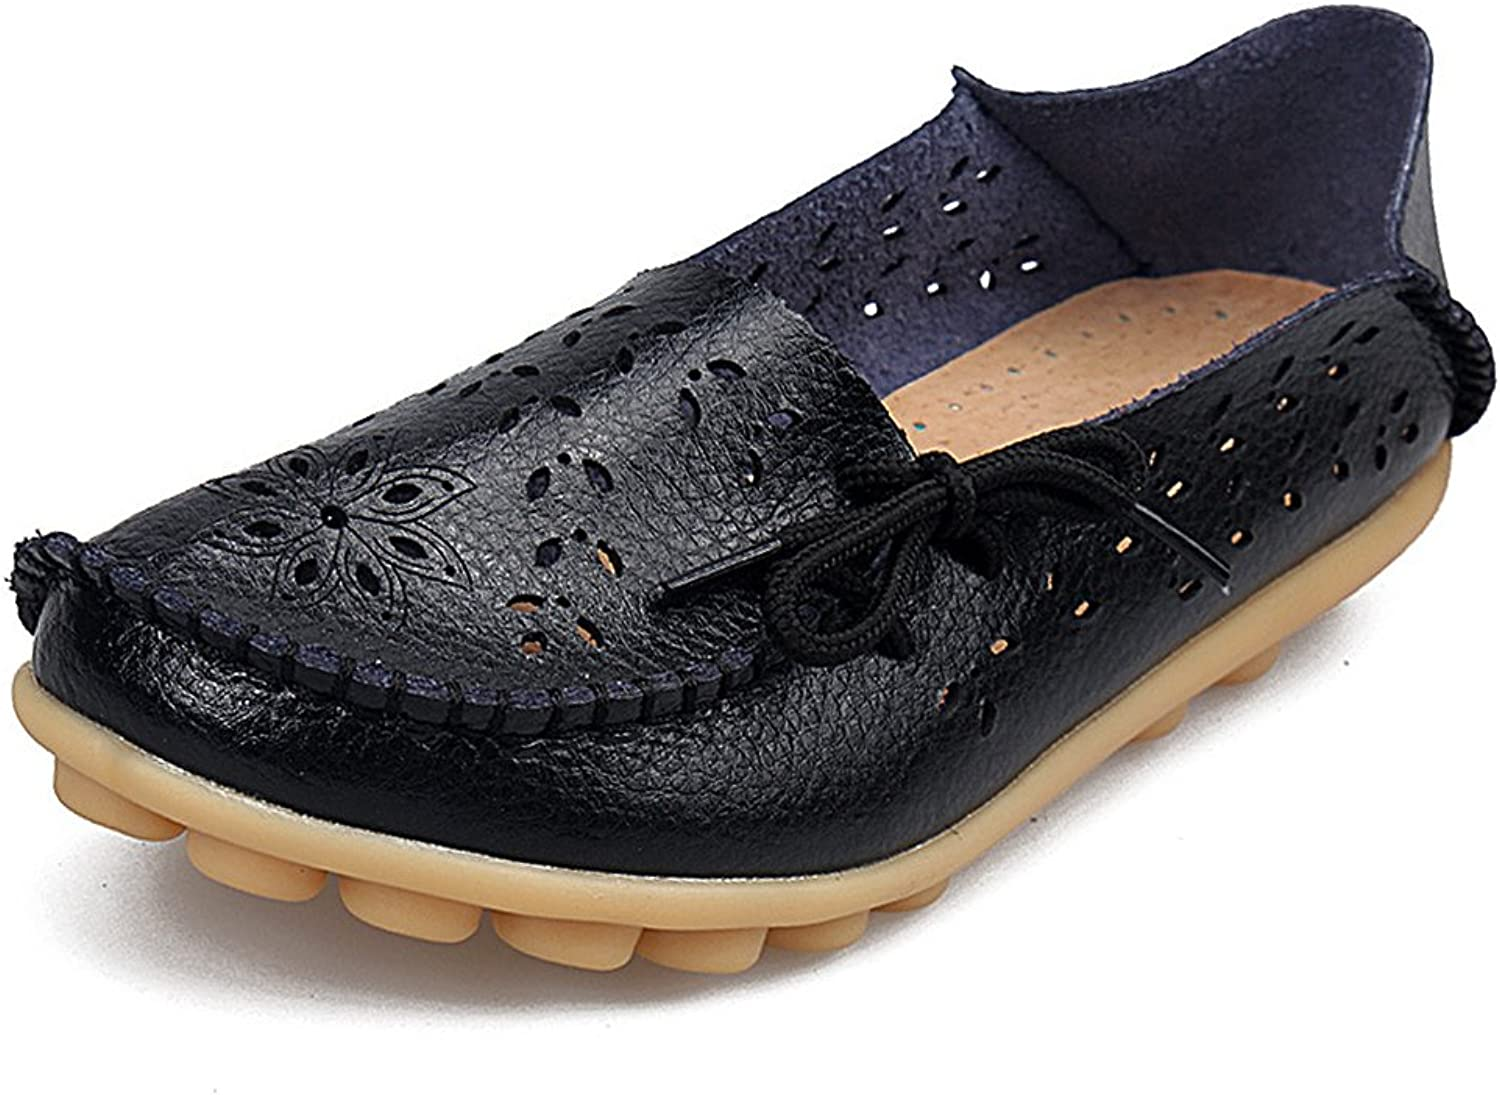 SHIBEVER Women's Leather Loafers Moccasins Wild Driving Casual Flats Oxfords Breathable shoes Black-2 10